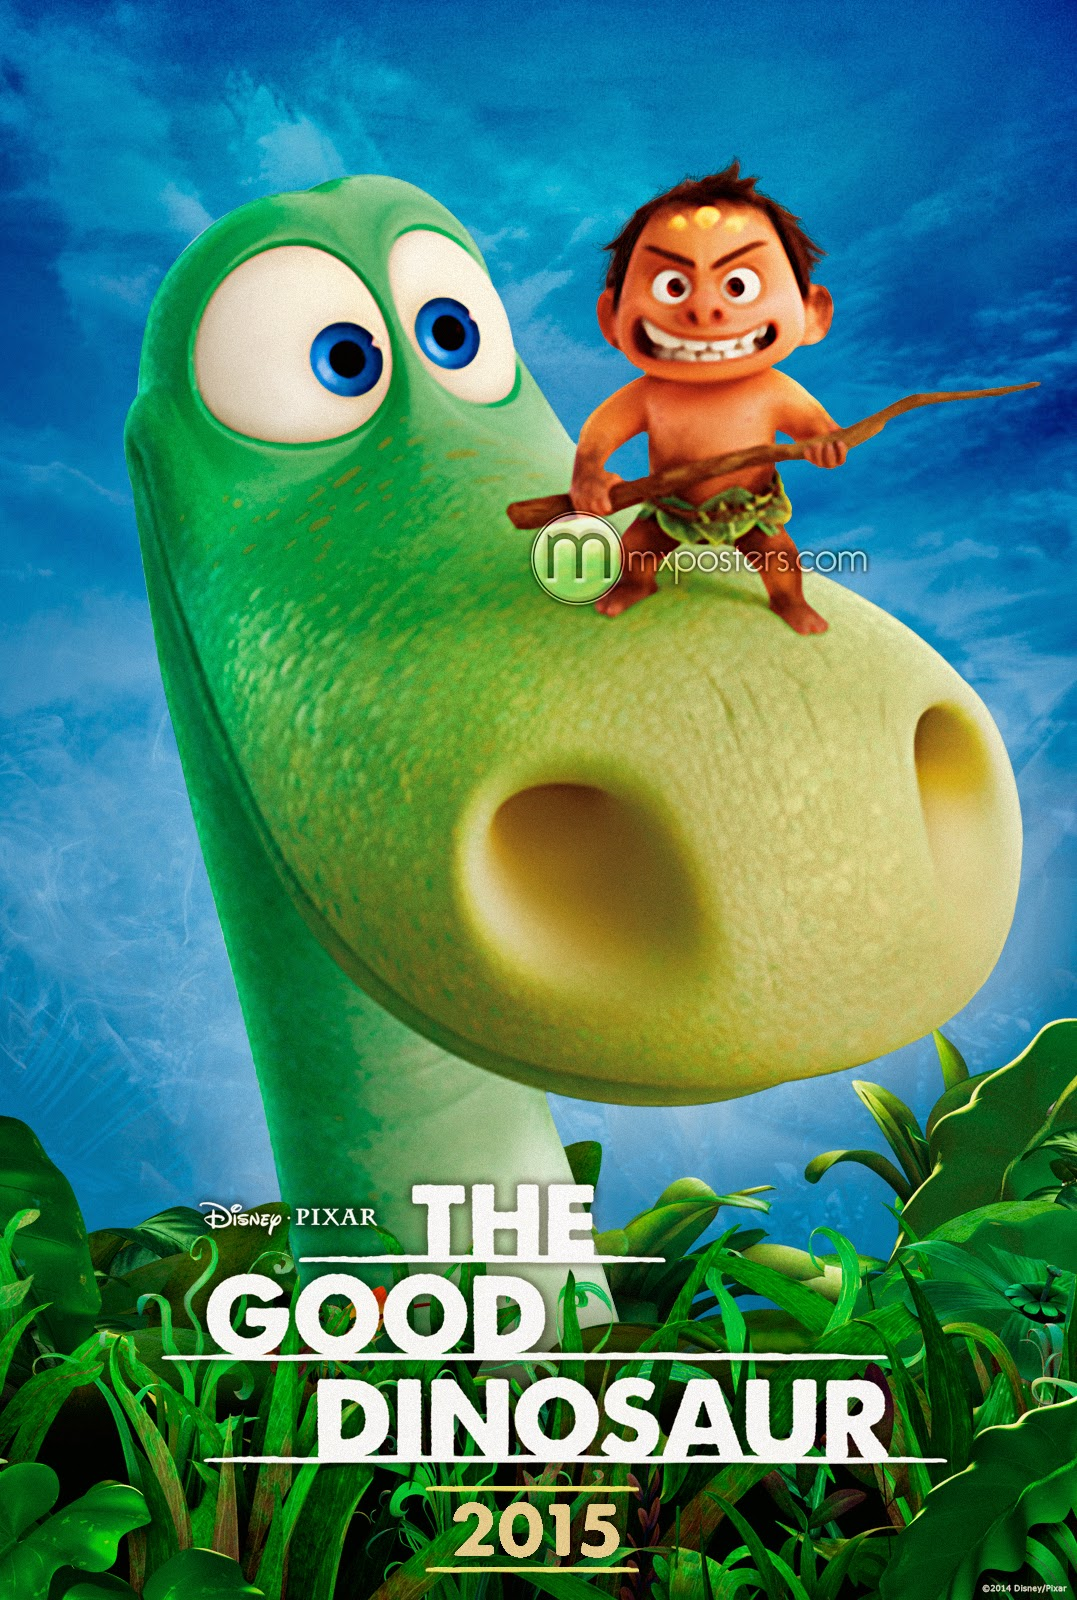 Here´s The First trailer for Pixar's The Good Dinosaur